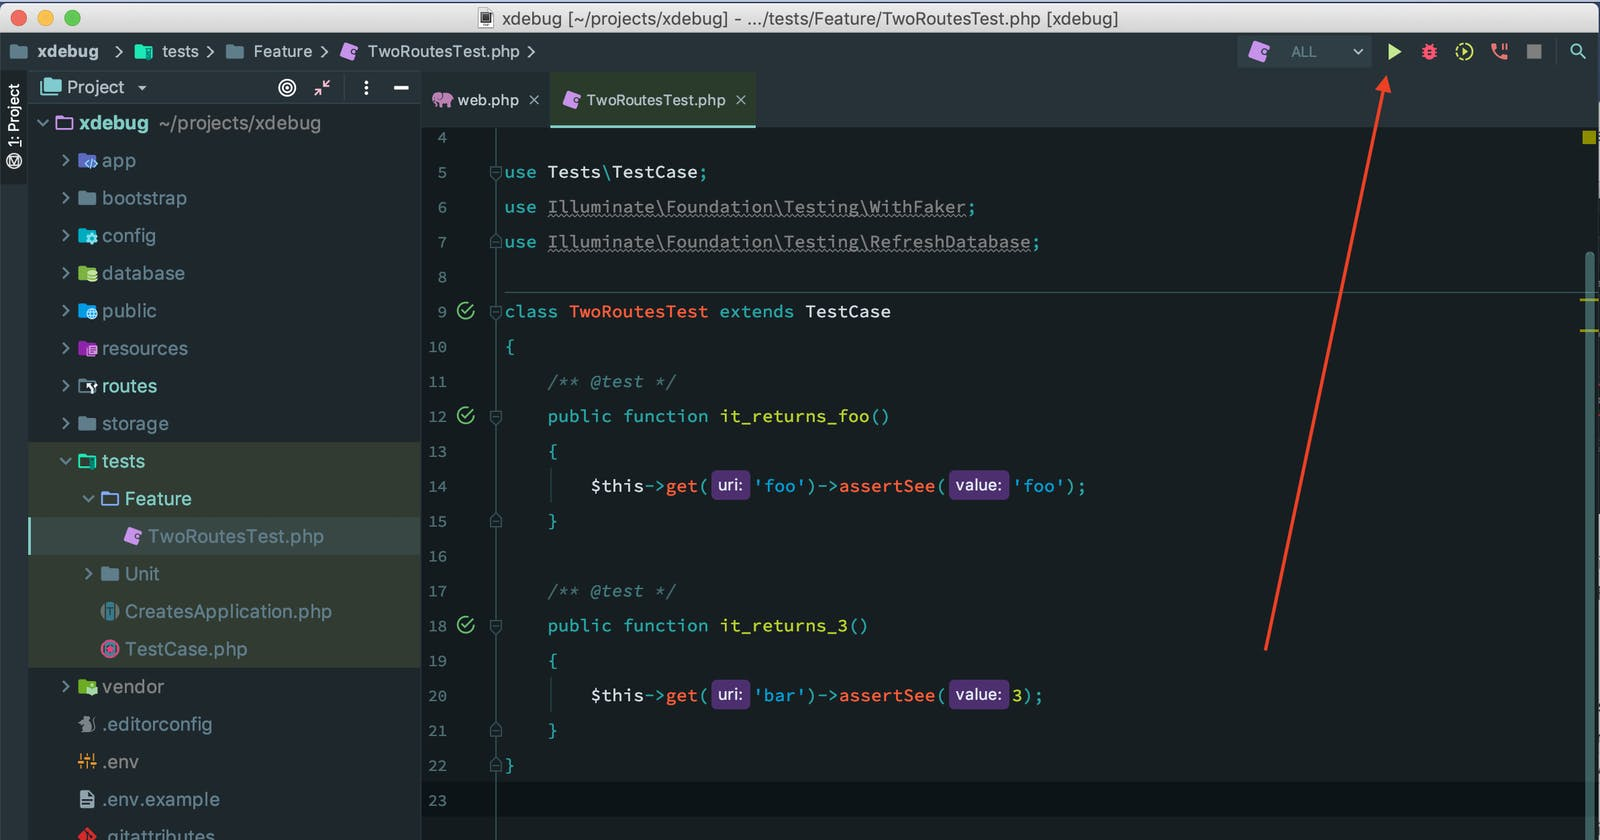 On-demand Xdebug with PHPUnit and Laravel inPhpStorm